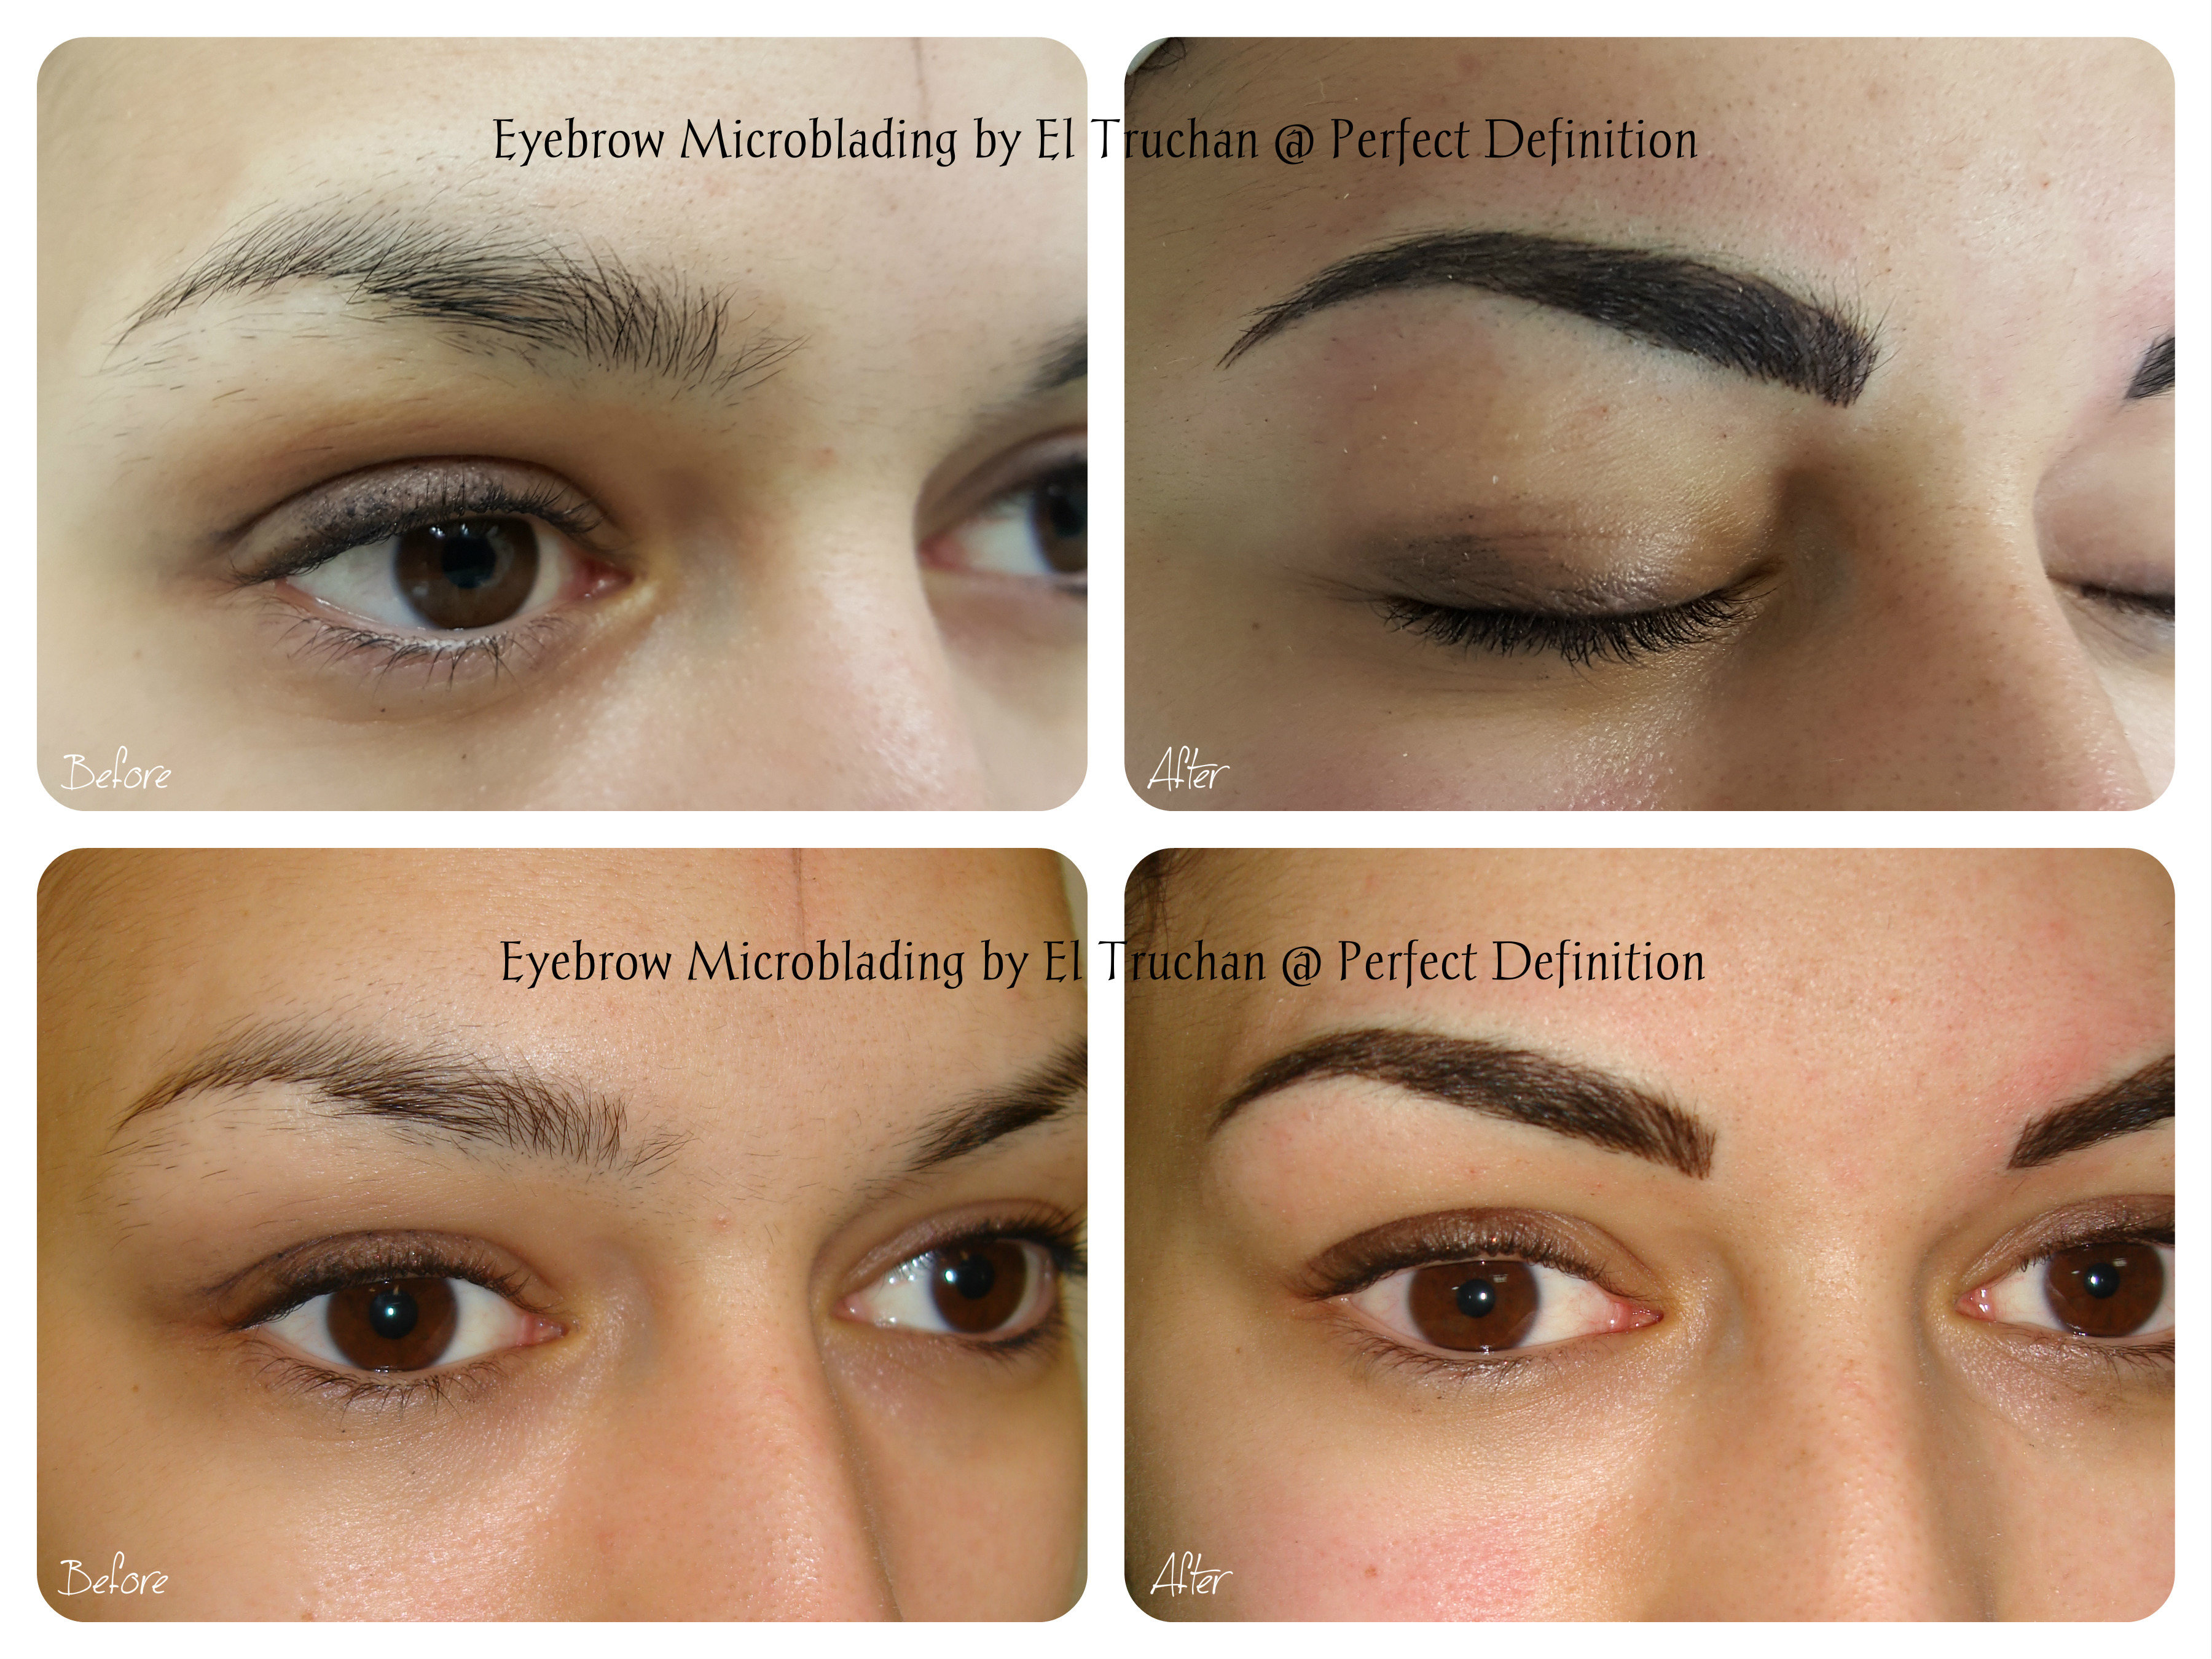 Eyebrow microblading by El Truchan_ Perfect Definition